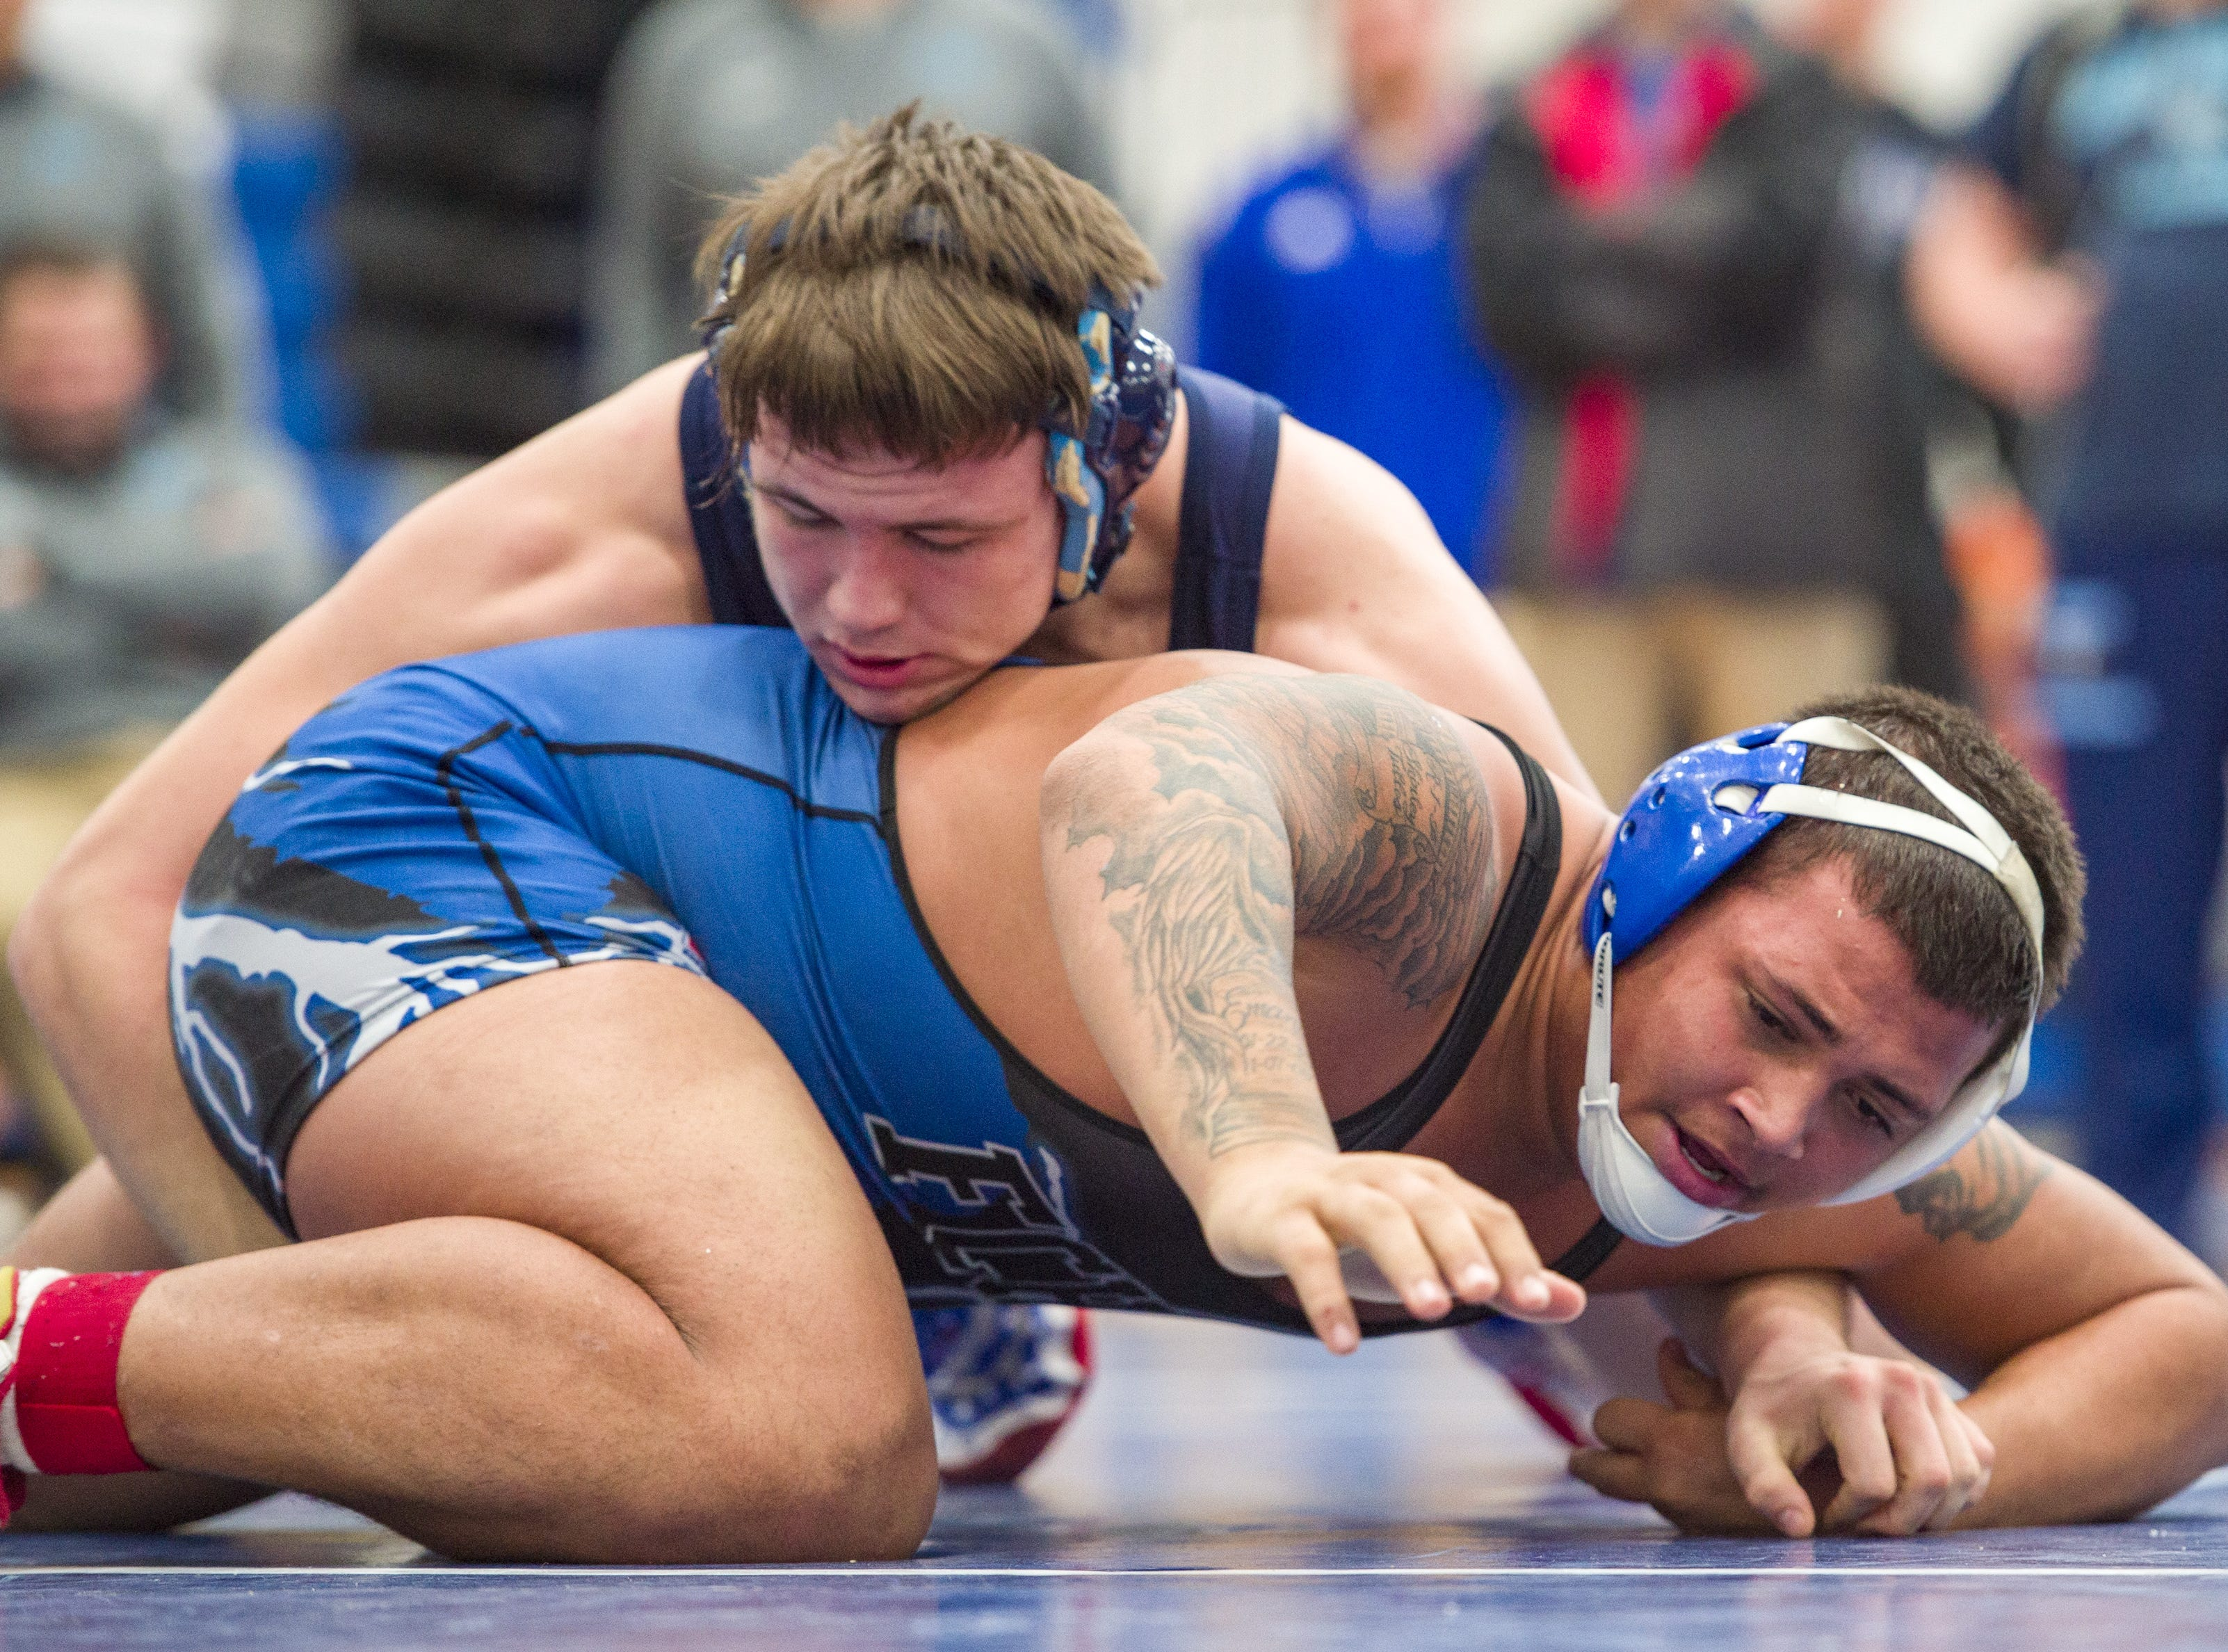 Perry Meridian High School wrestler Austin Lane, top, competes with Franklin Central High School's Deshawn Young in the 220-pound weight class. Franklin Central High School hosted the Marion County wrestling championships, Saturday, Dec. 15, 2018.